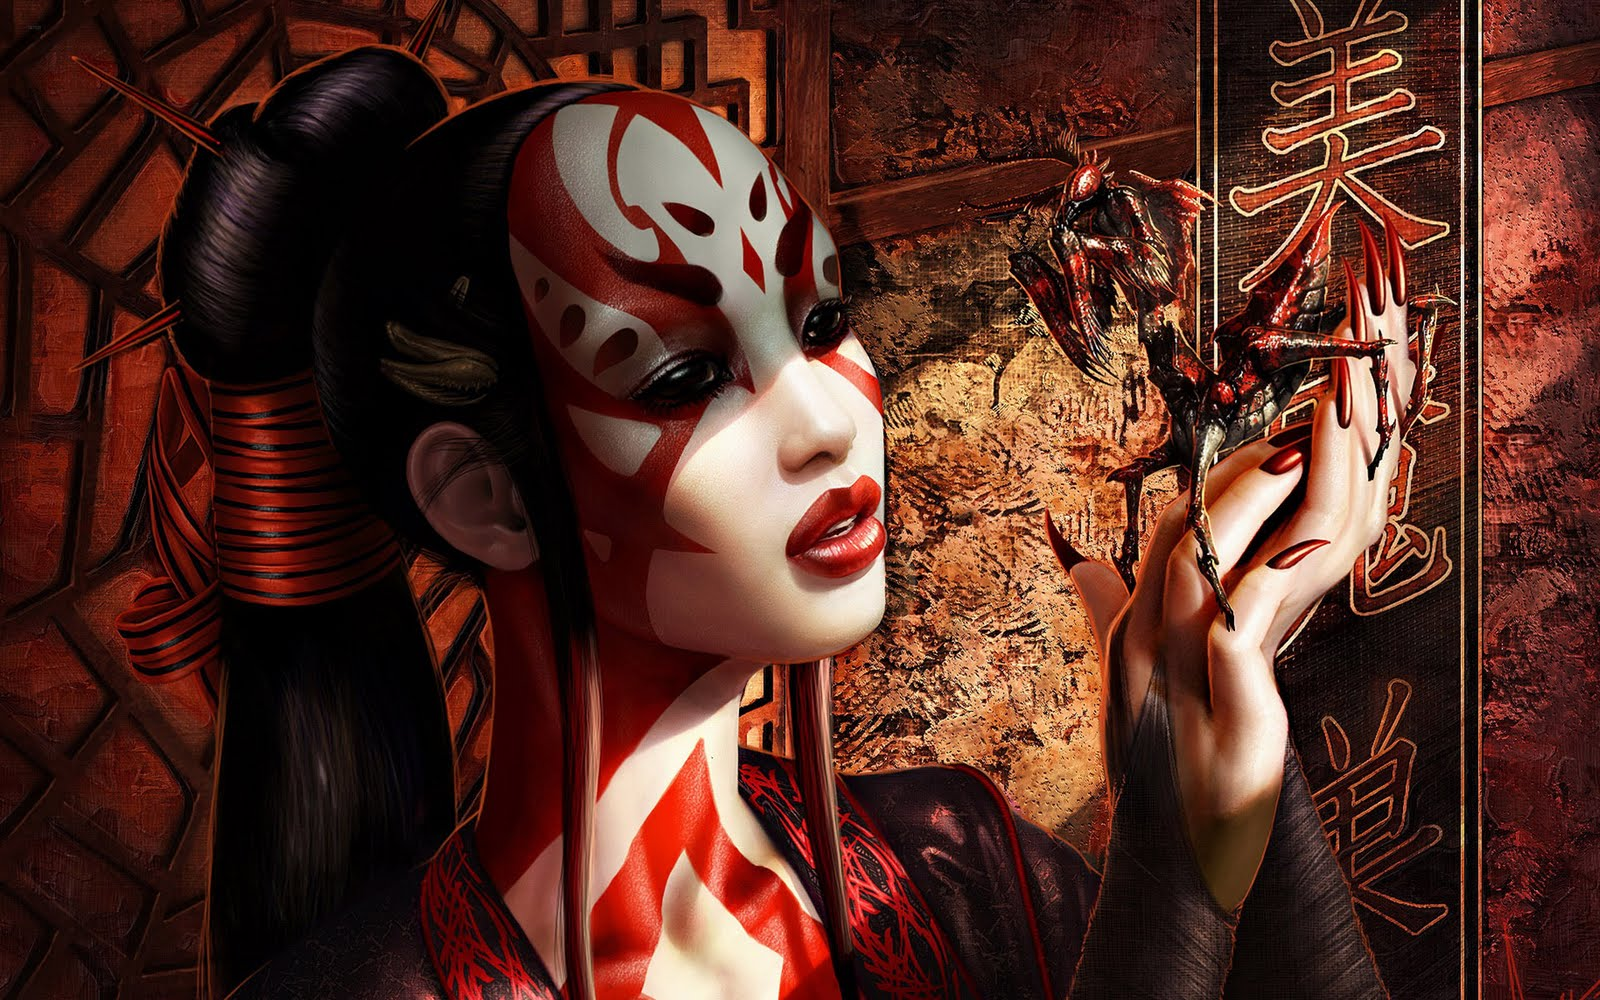 Japanese wallpapers: Asian wallpapers - Art by Steve Argyle